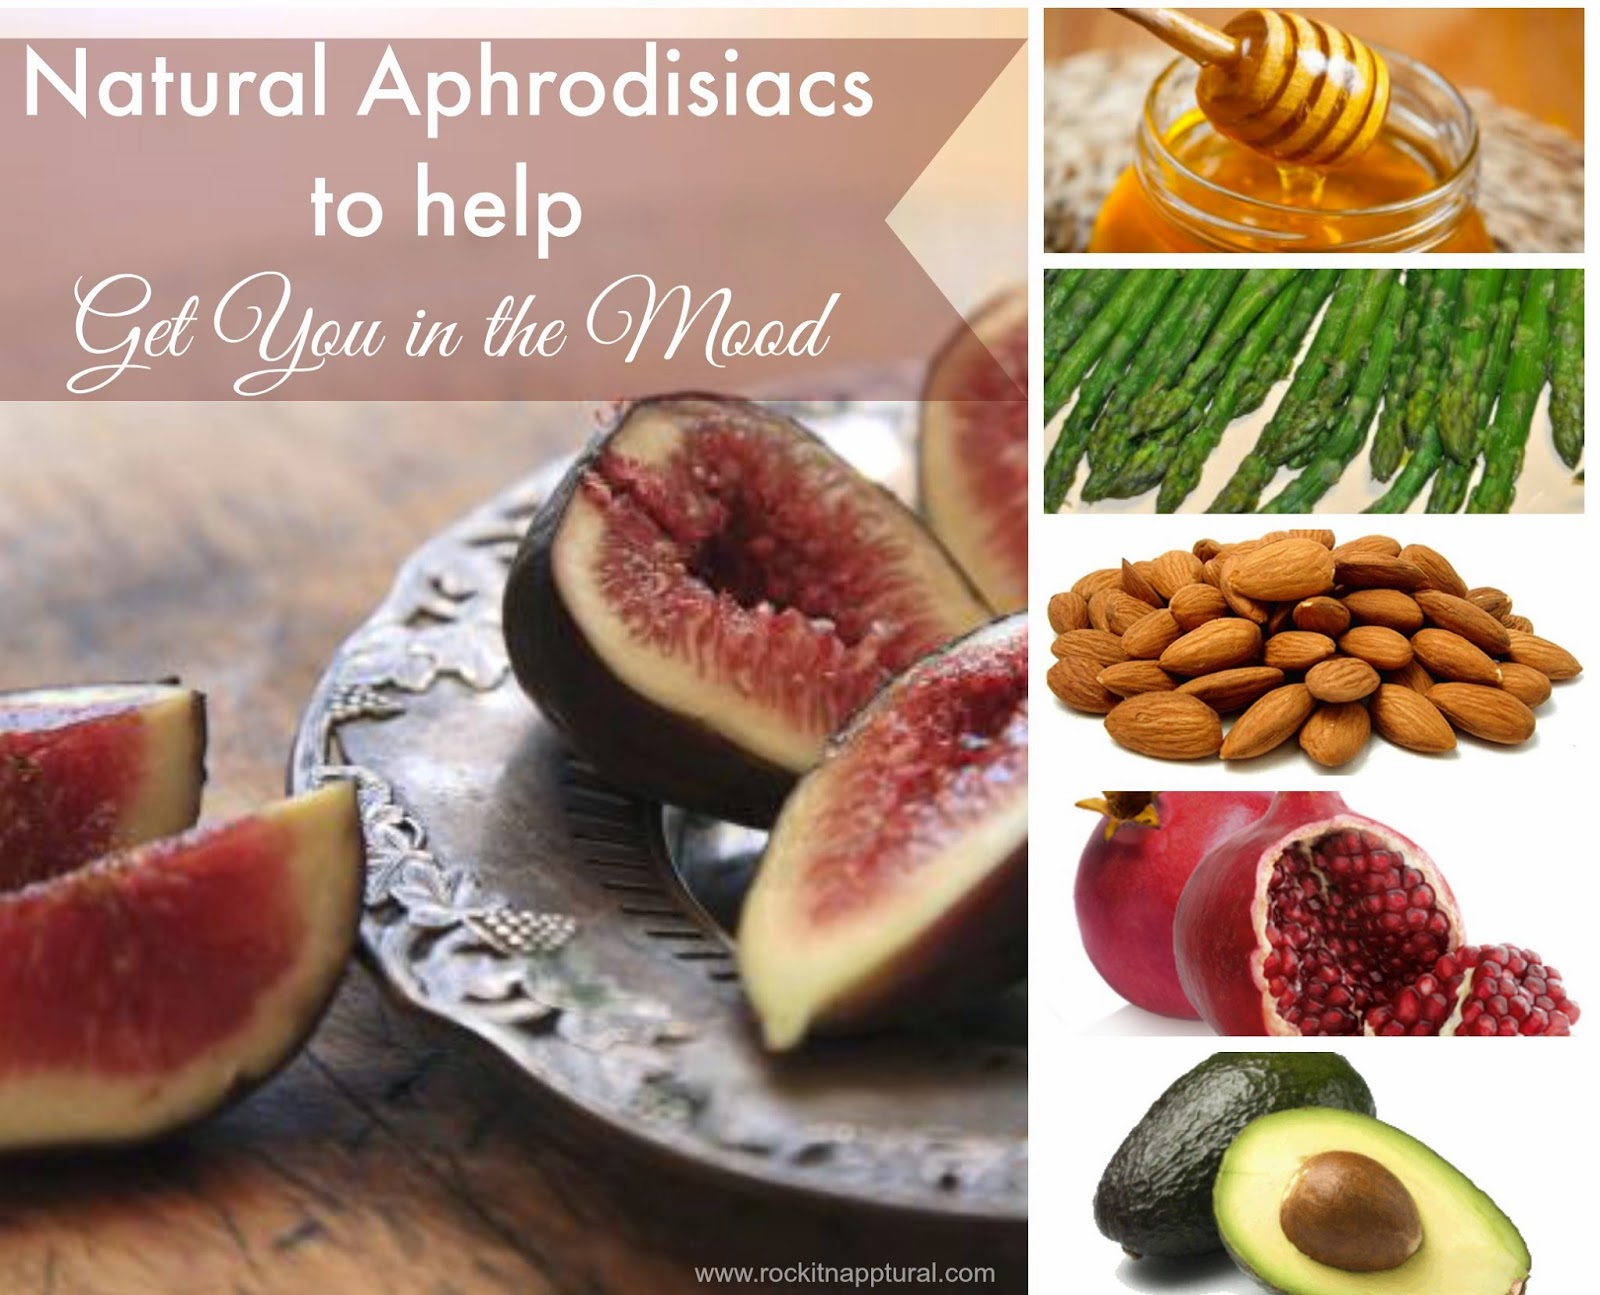 Natural aphrodisiacs, natural mood enhancers